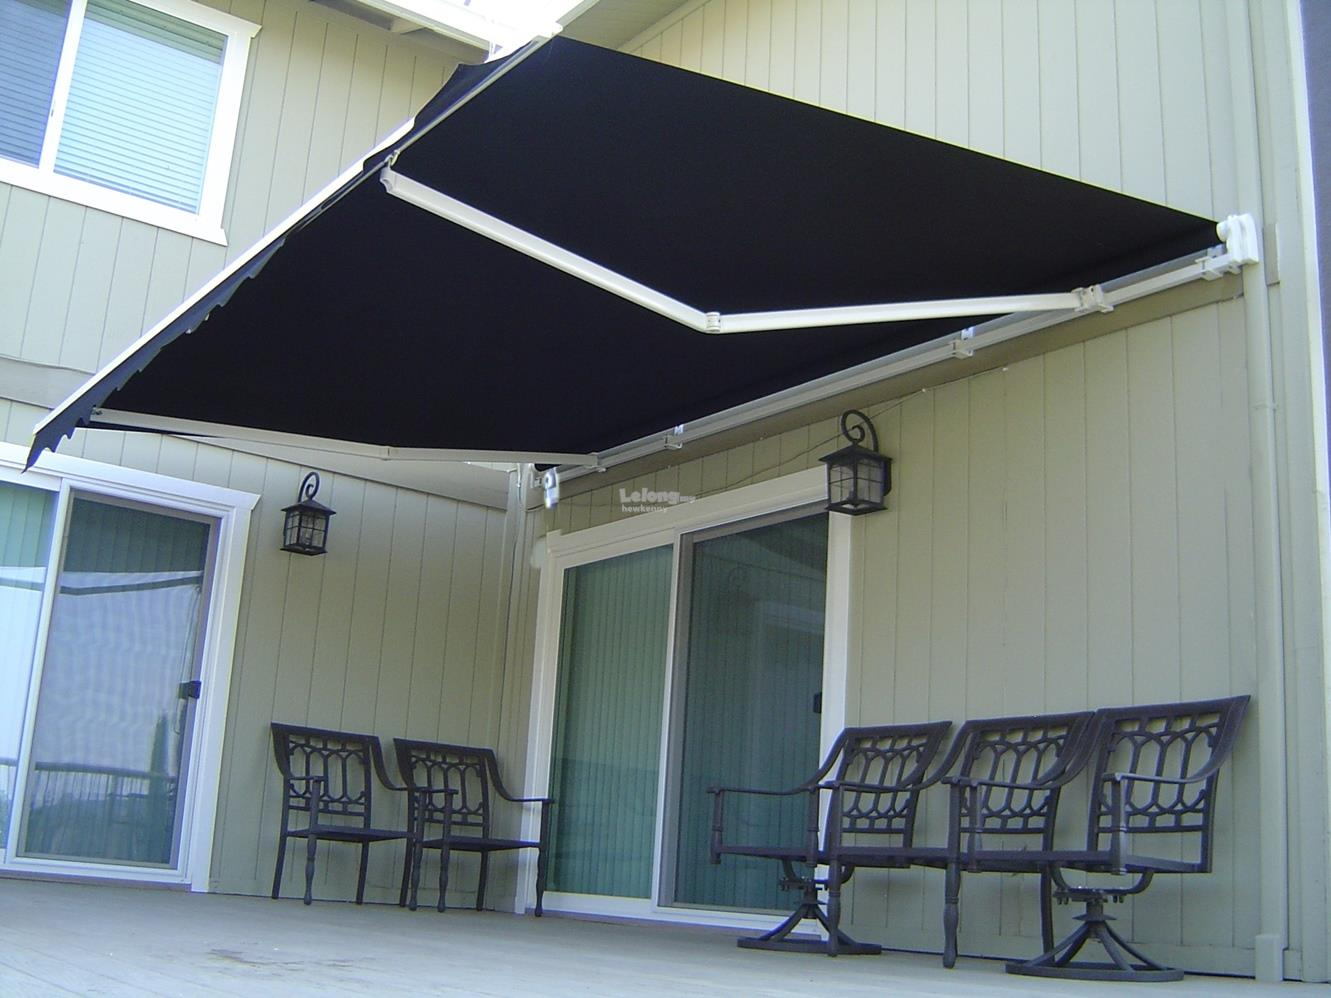 Retractable Motorized Awning End 12 11 2016 12 15 Pm